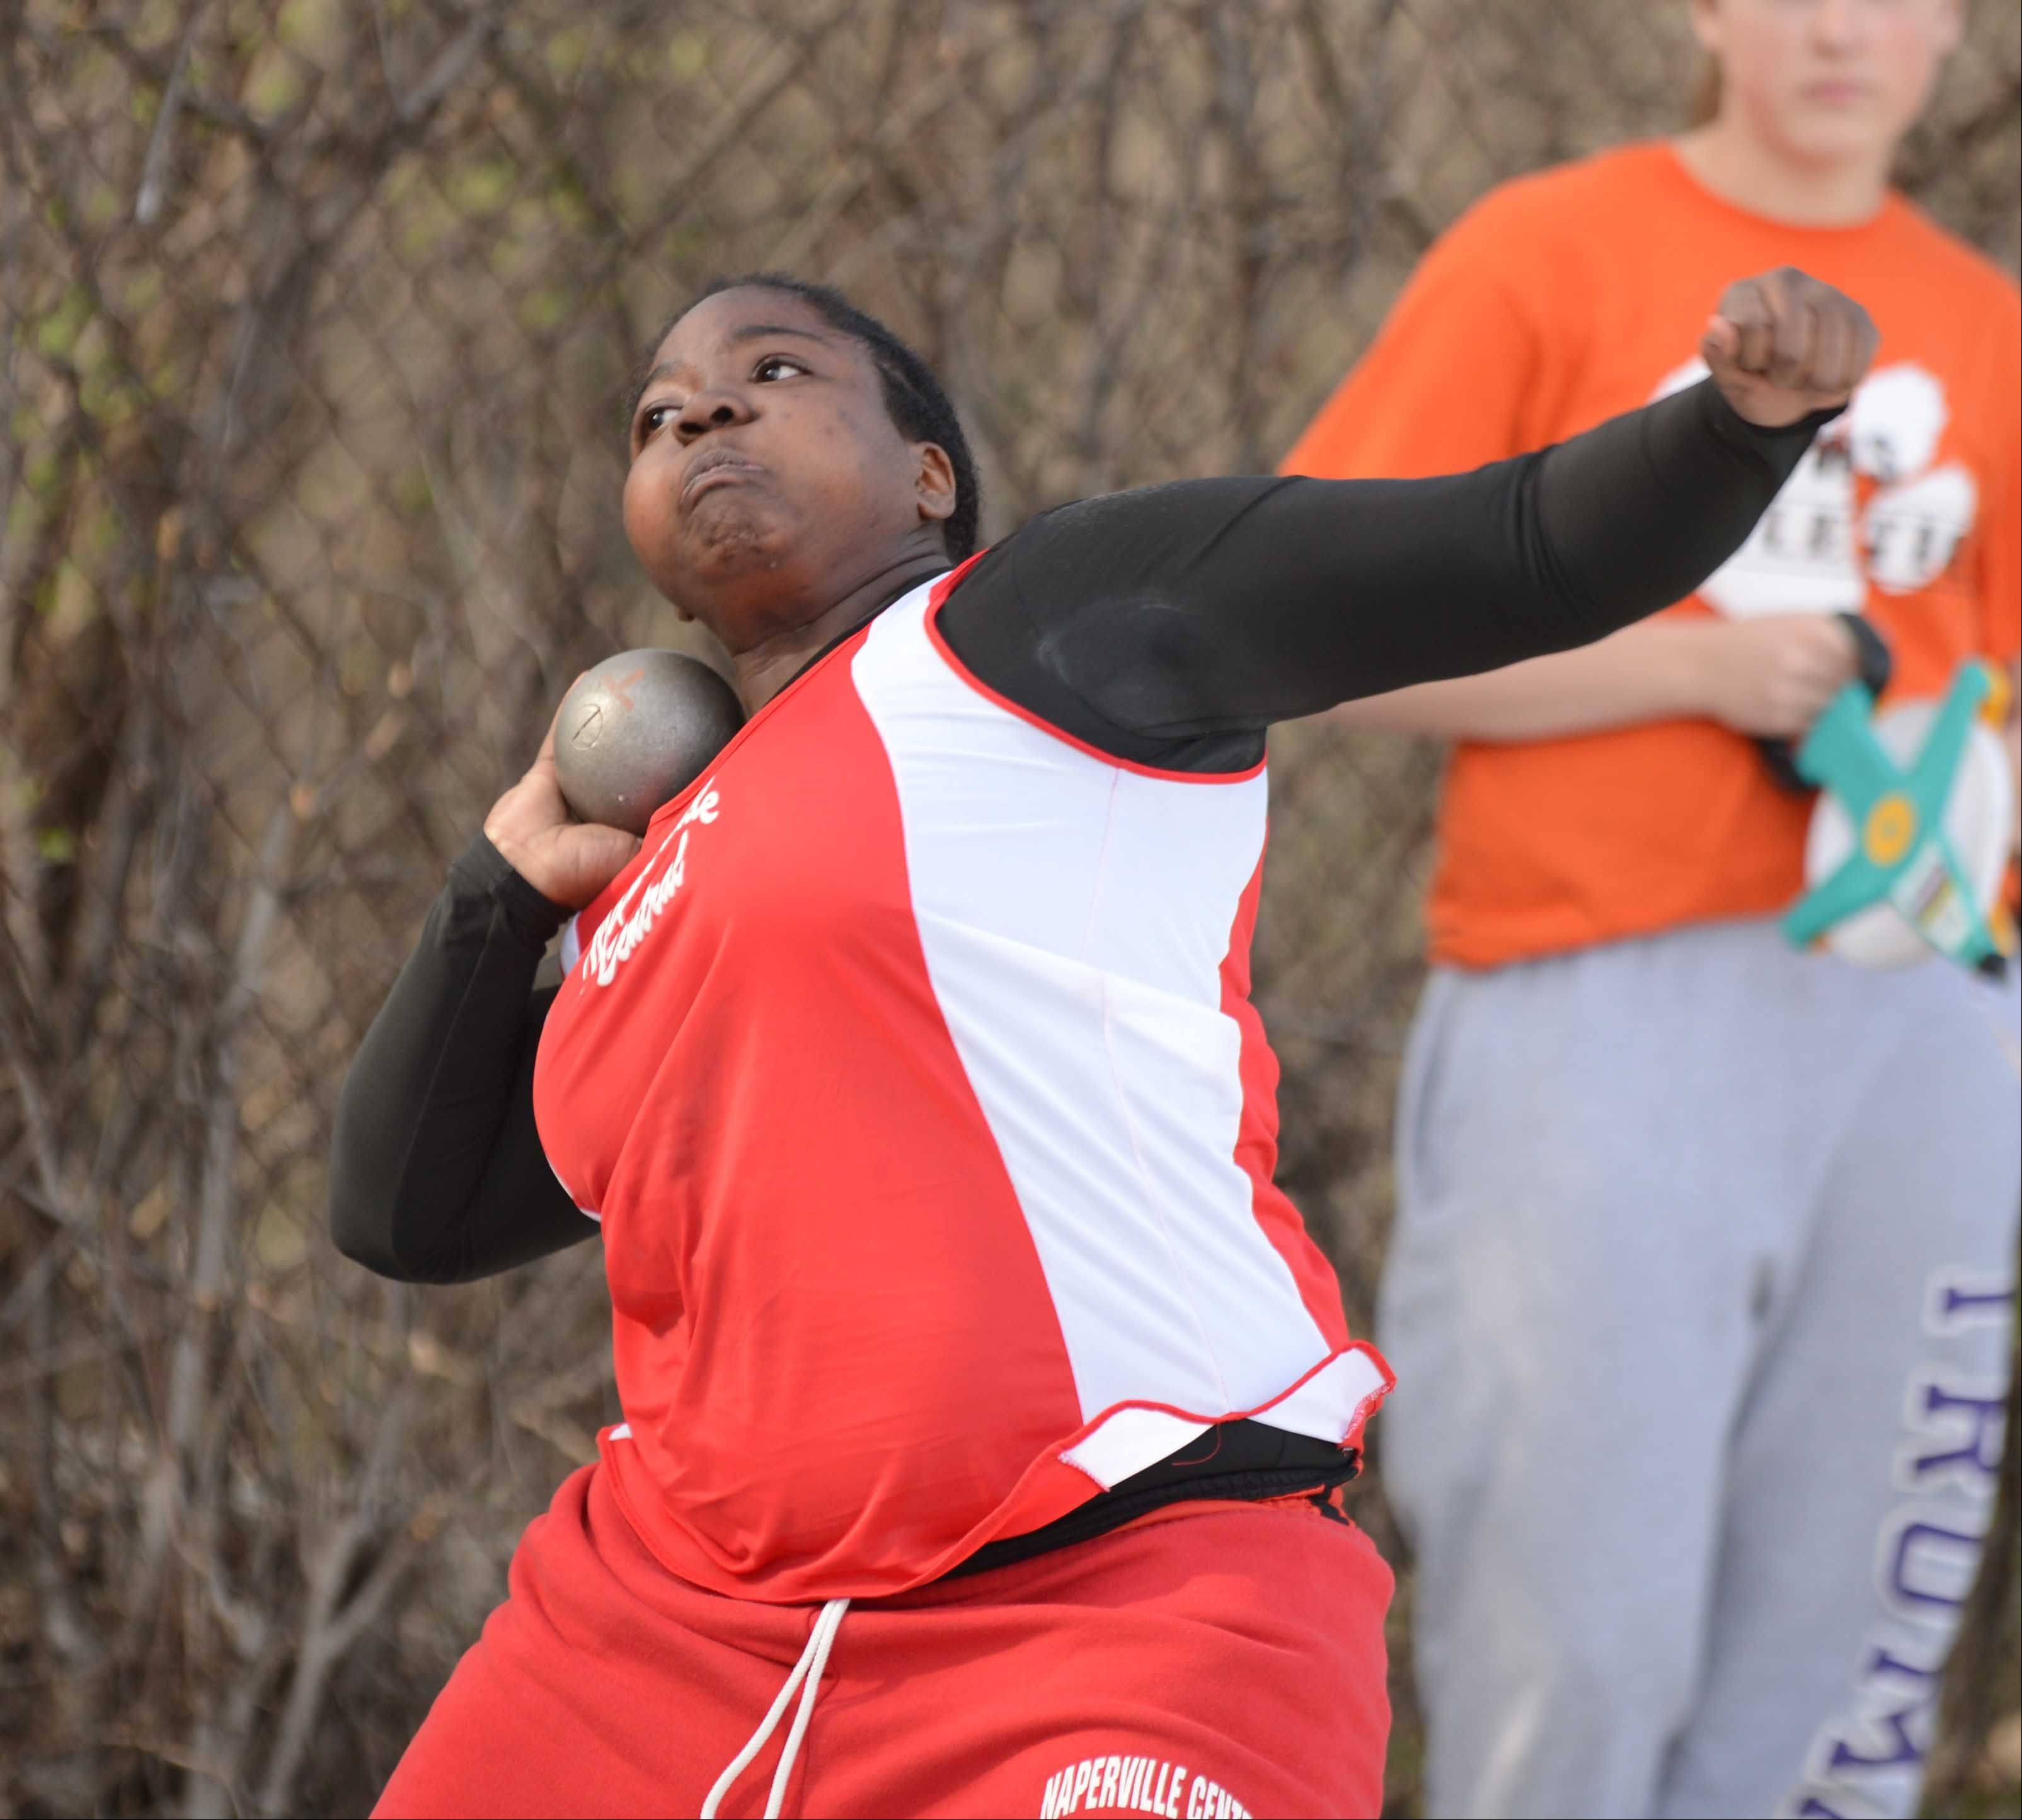 Tina Norris of Naperville Central throws the shot put during the Wheaton Warrenville South girls track meet Friday.